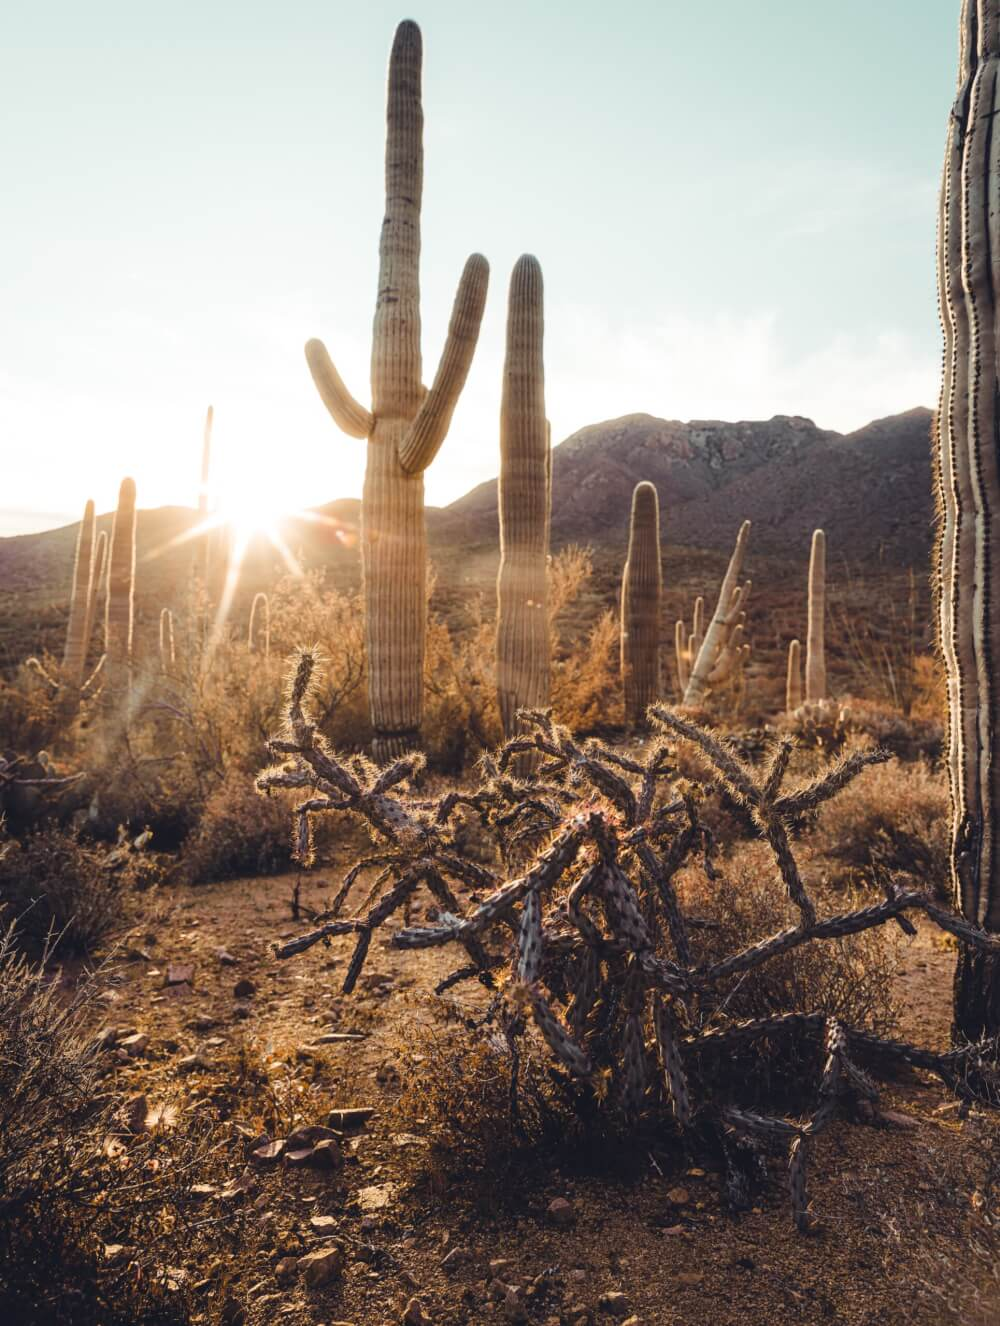 A view of towering cacti, arid vegetation, and rocky hills in the background with the sun pressing down.